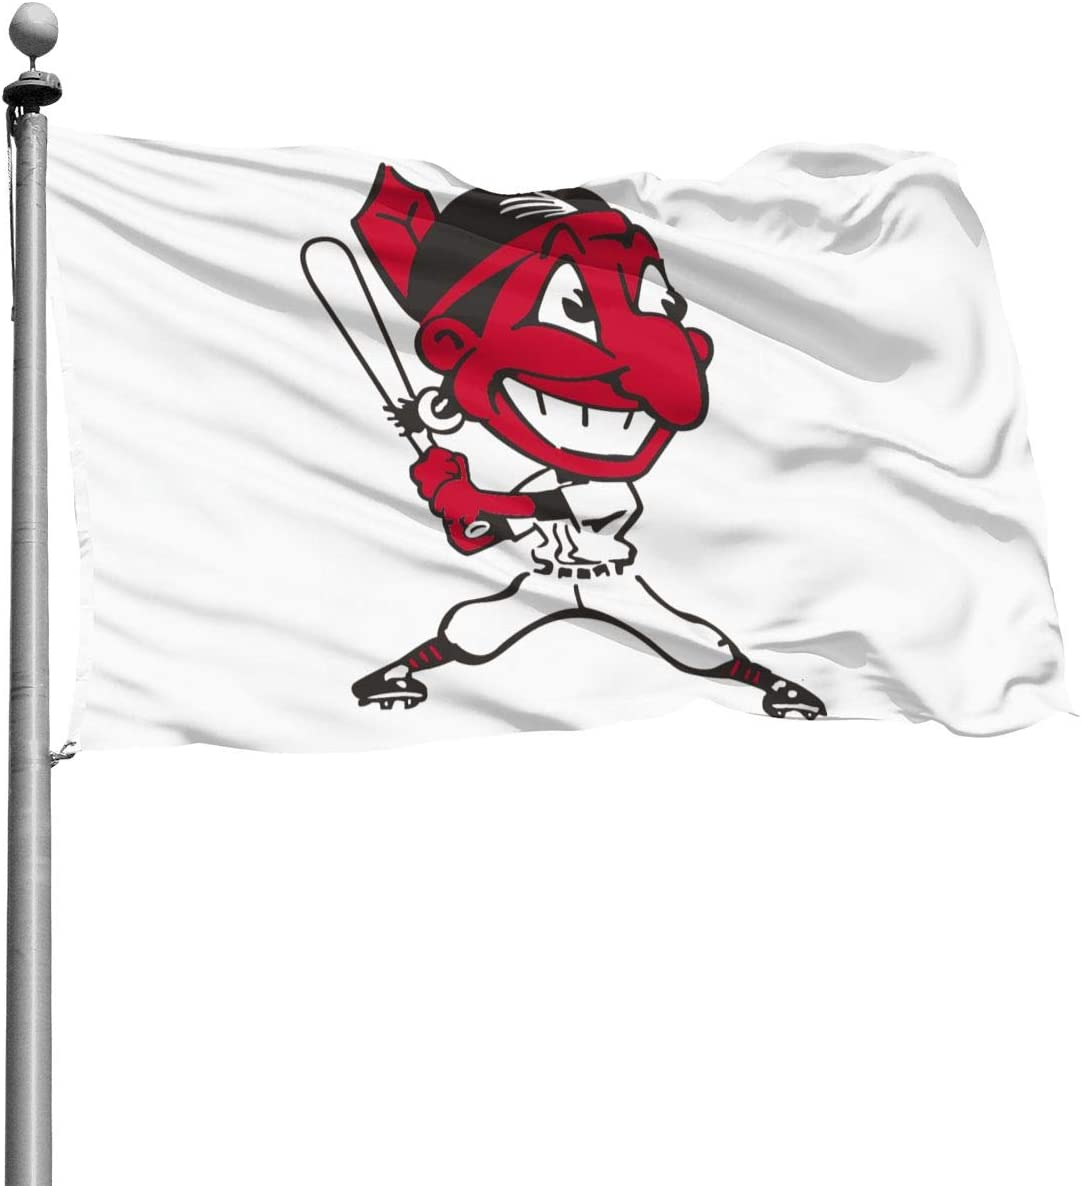 Qq6-earn-store Chief Wahoo Home Decoration Flag Garden Flag Indoor Outdoor Flag 4x6 Ft